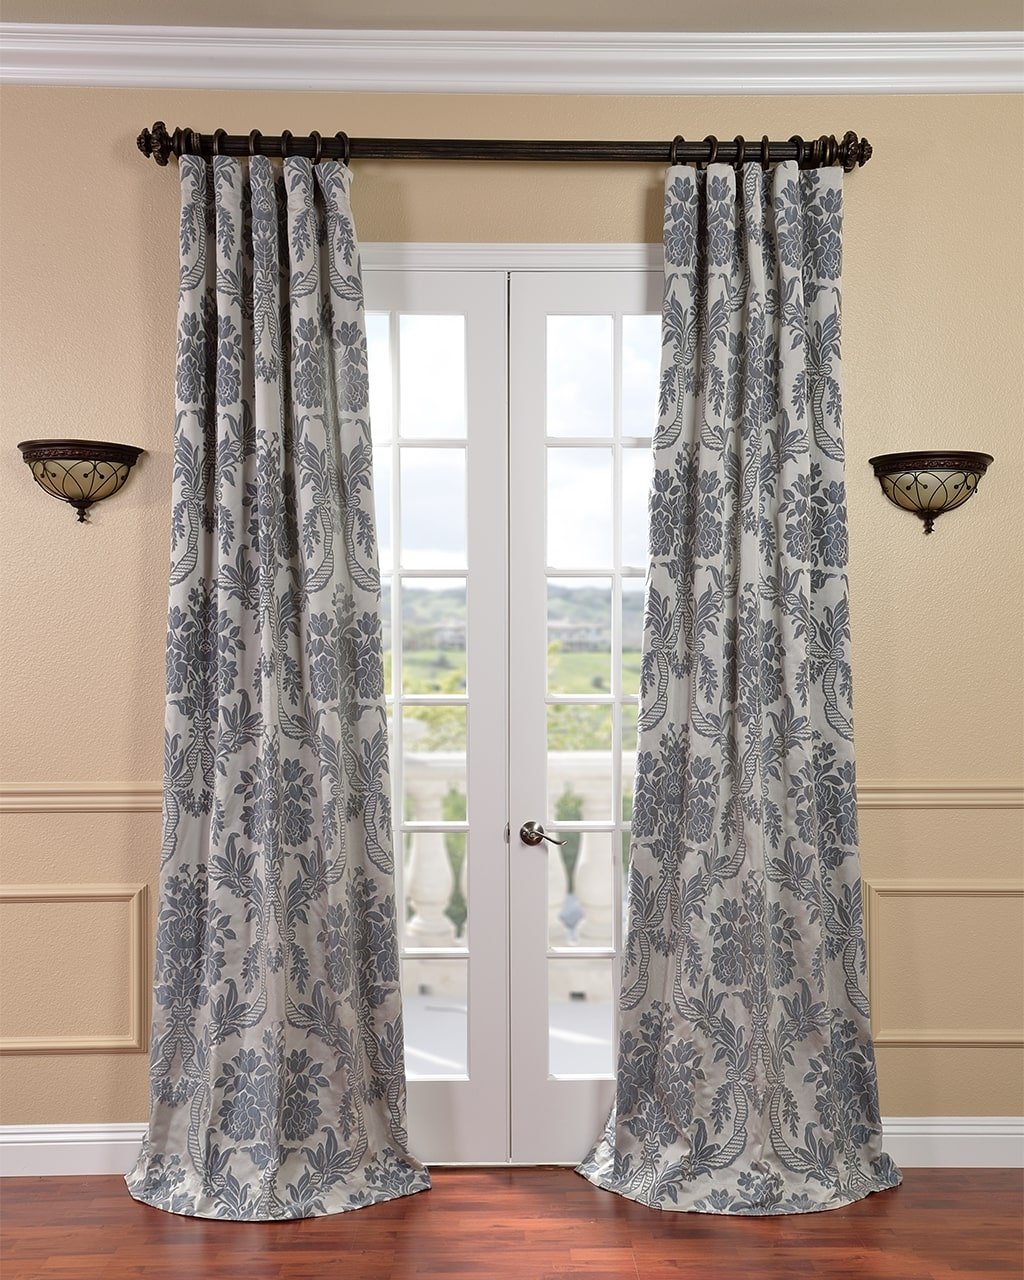 120 Inches Curtains Drapes Shop The Best Brands Overstock Intended For Extra Long Thermal Curtains (Photo 4 of 15)